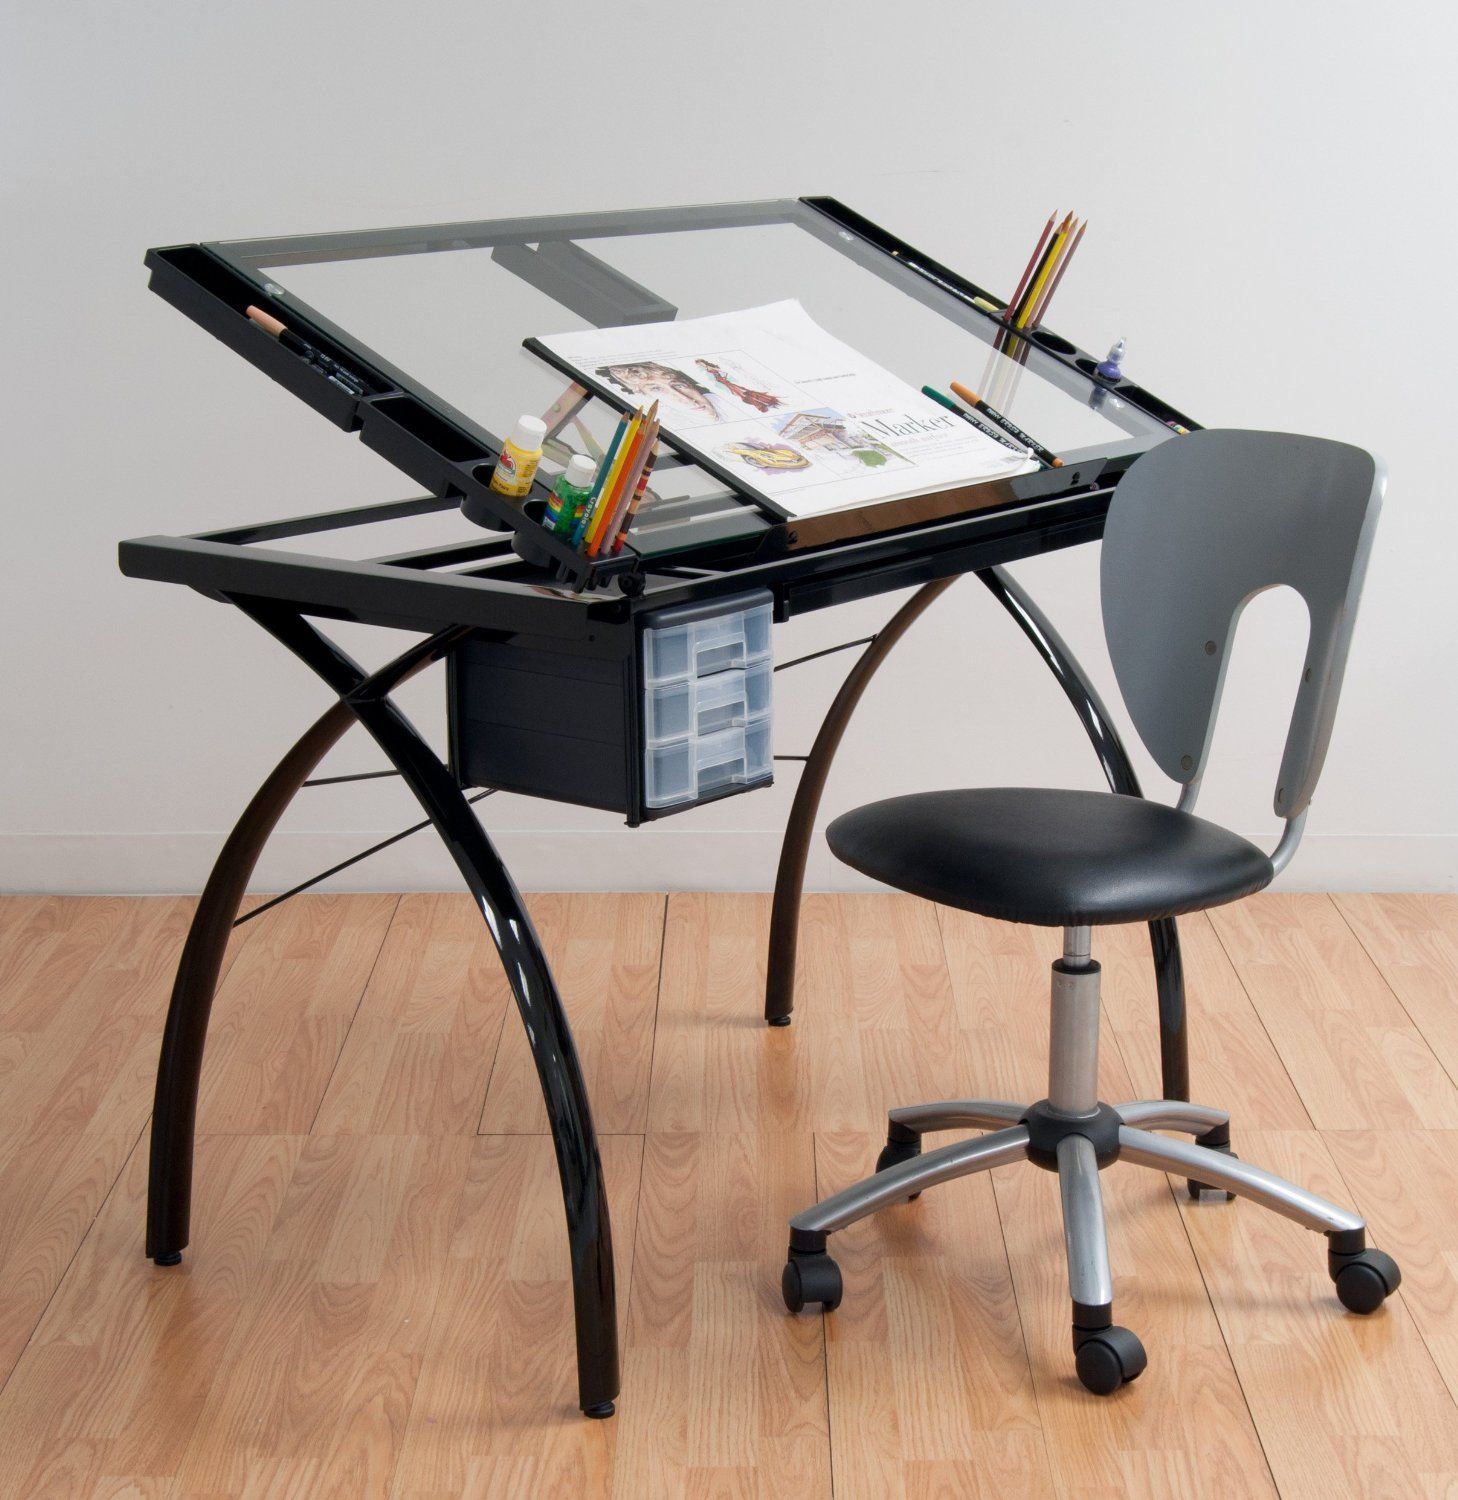 The Perfect Multi Functional Contemporary Table, The Futura Drafting Table  With Glass Top Is Great For Drafting, Drawing, Or Crafting On Its Large  Tempered ... Amazing Design